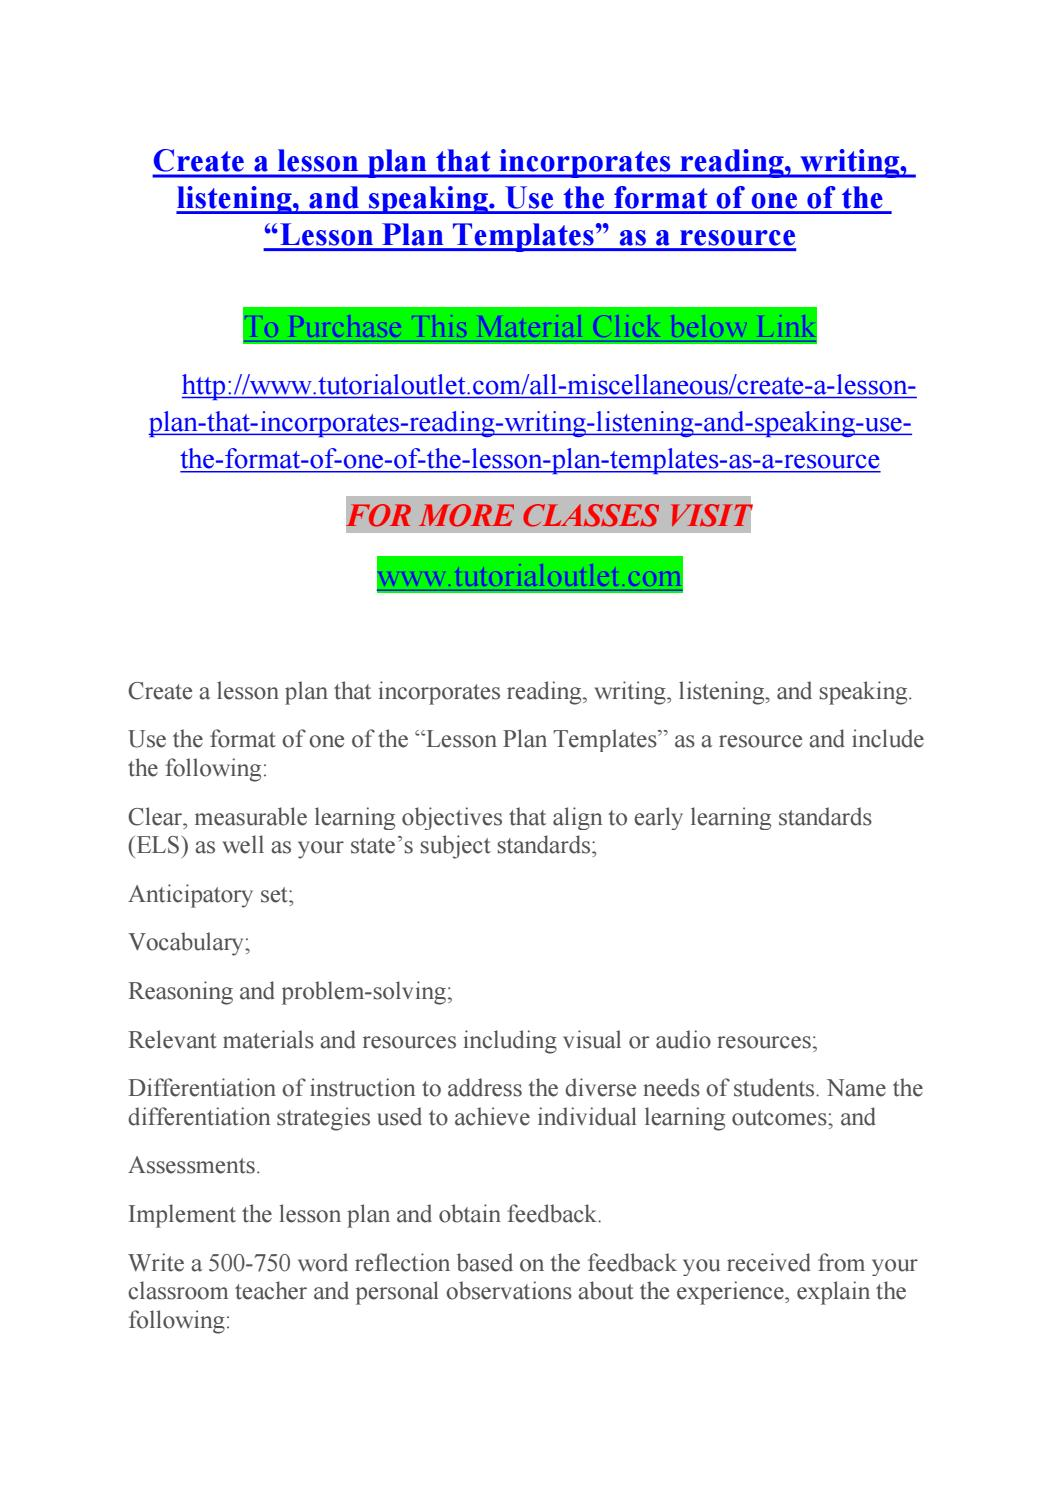 Create a lesson plan that incorporates reading, writing